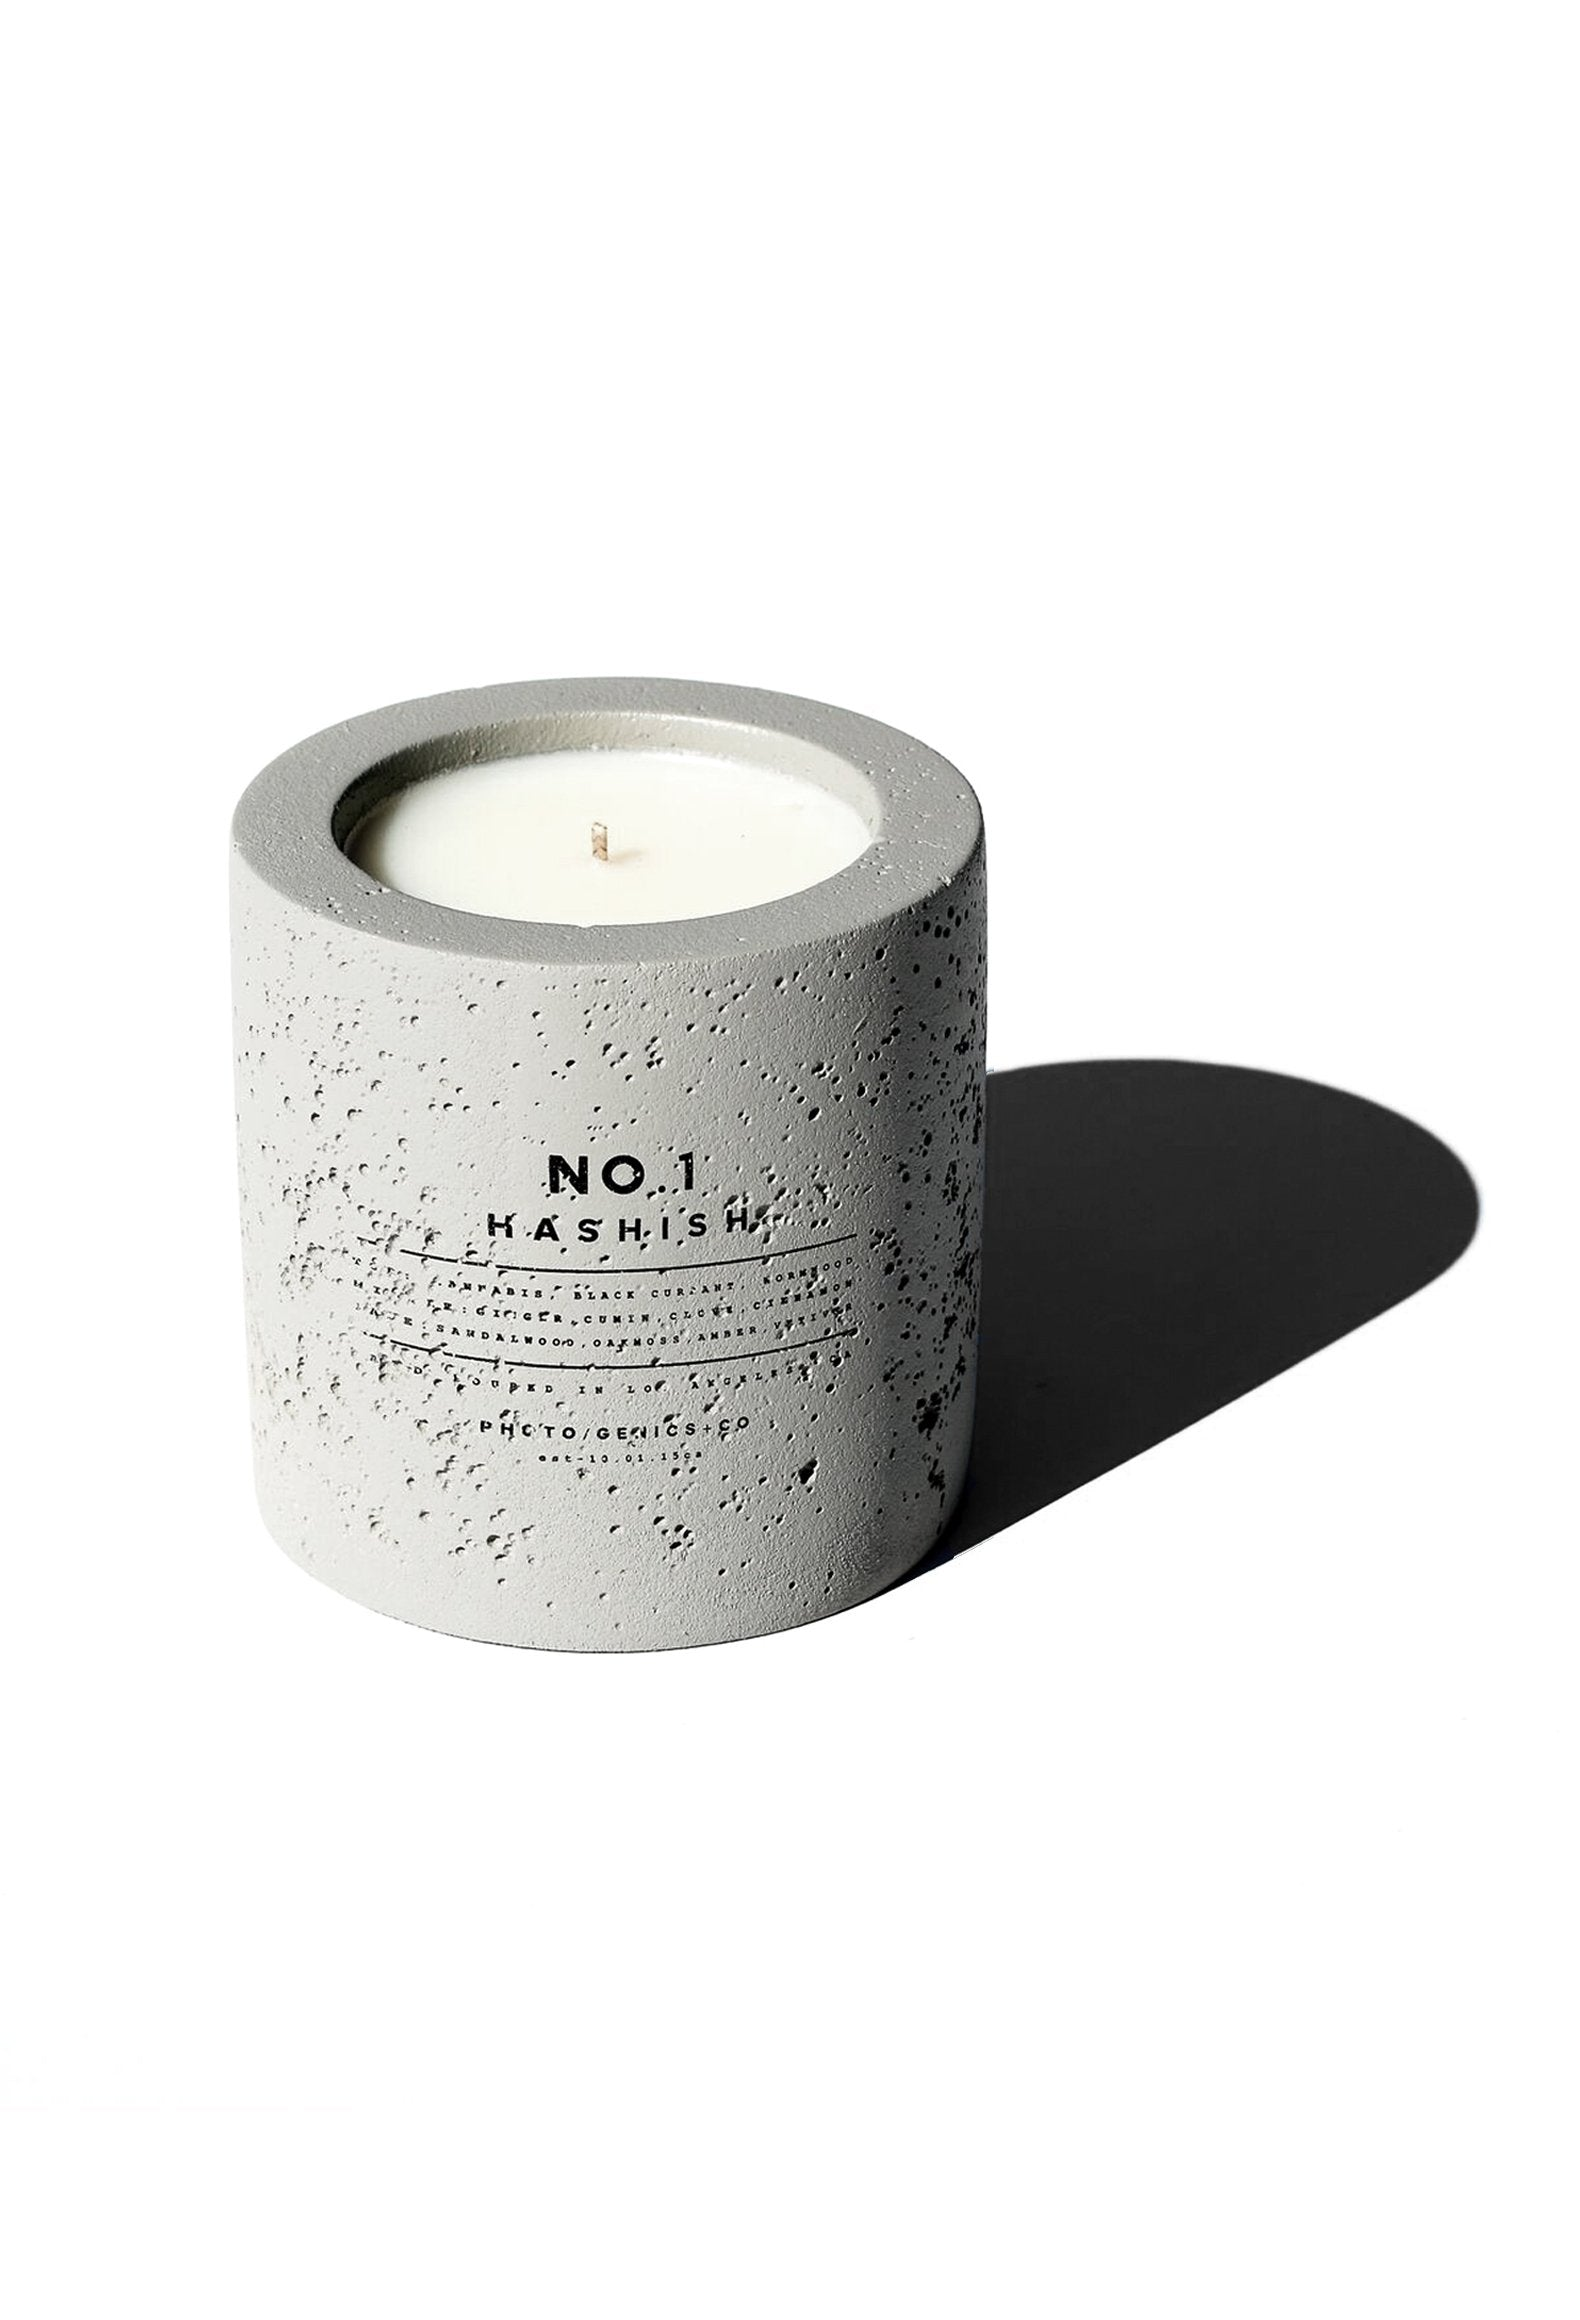 No.1 Hashish Concrete Candle